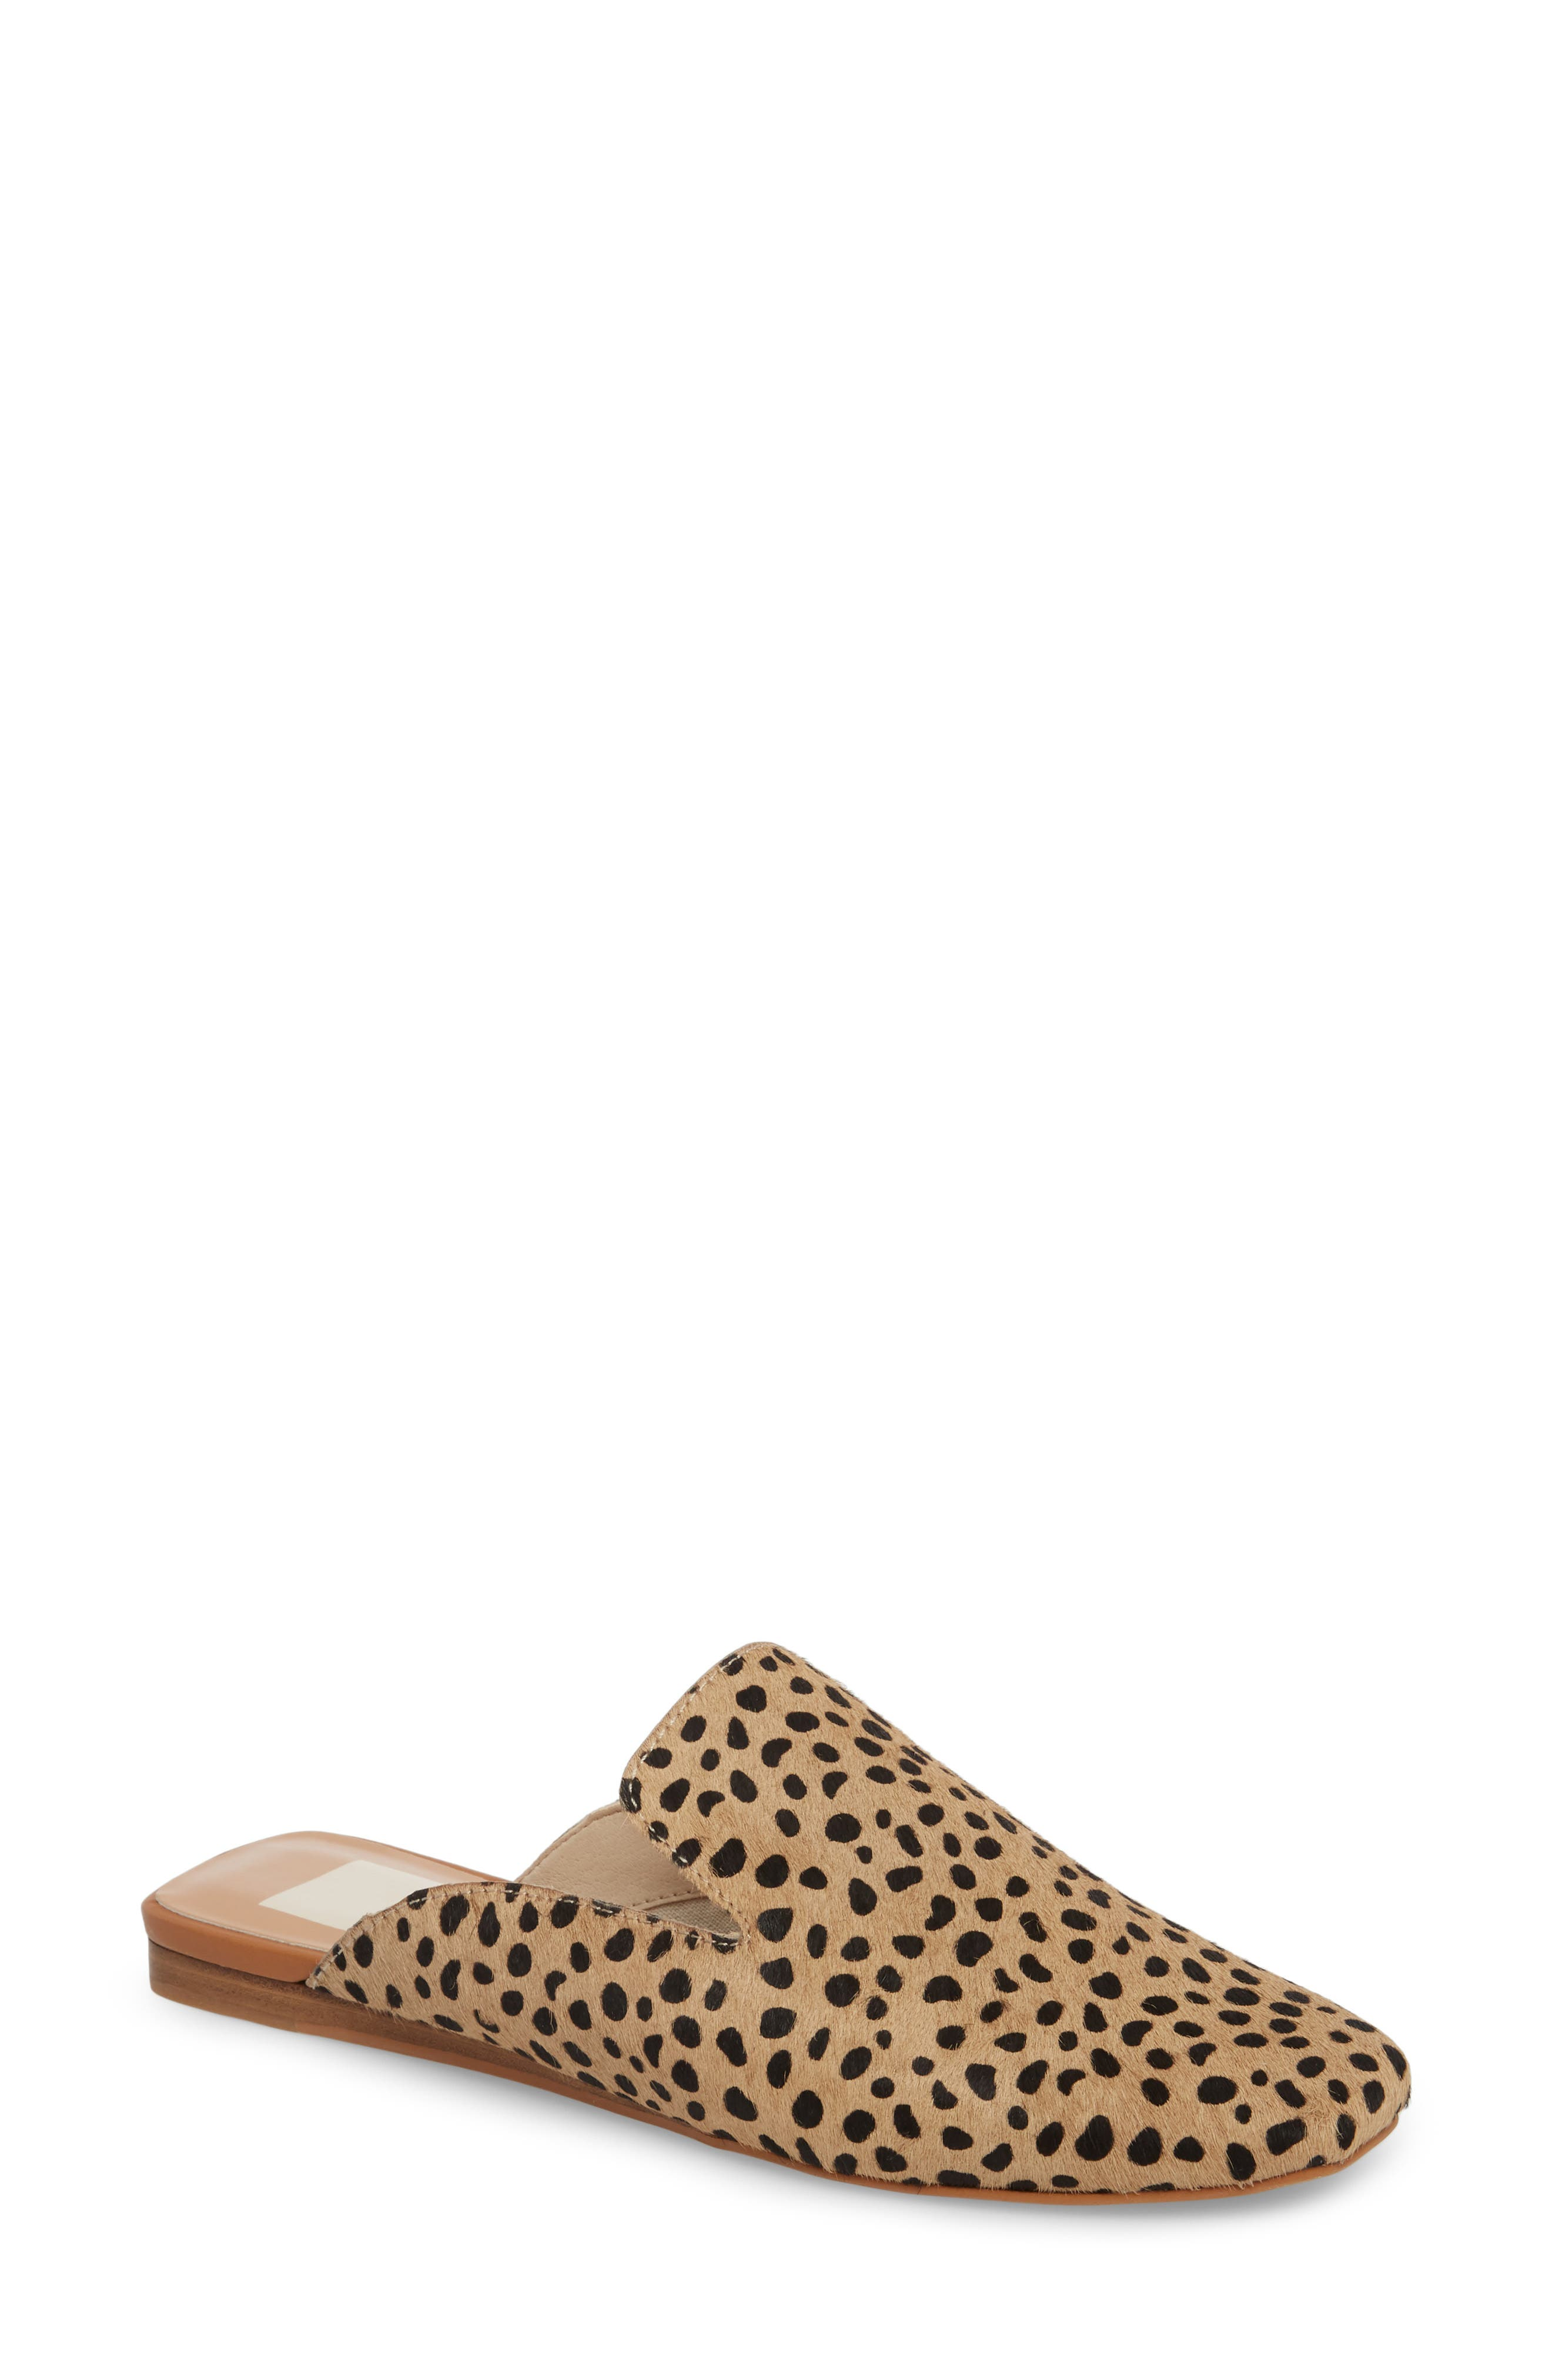 Brie Flat Mule,                         Main,                         color, LEOPARD CALF HAIR